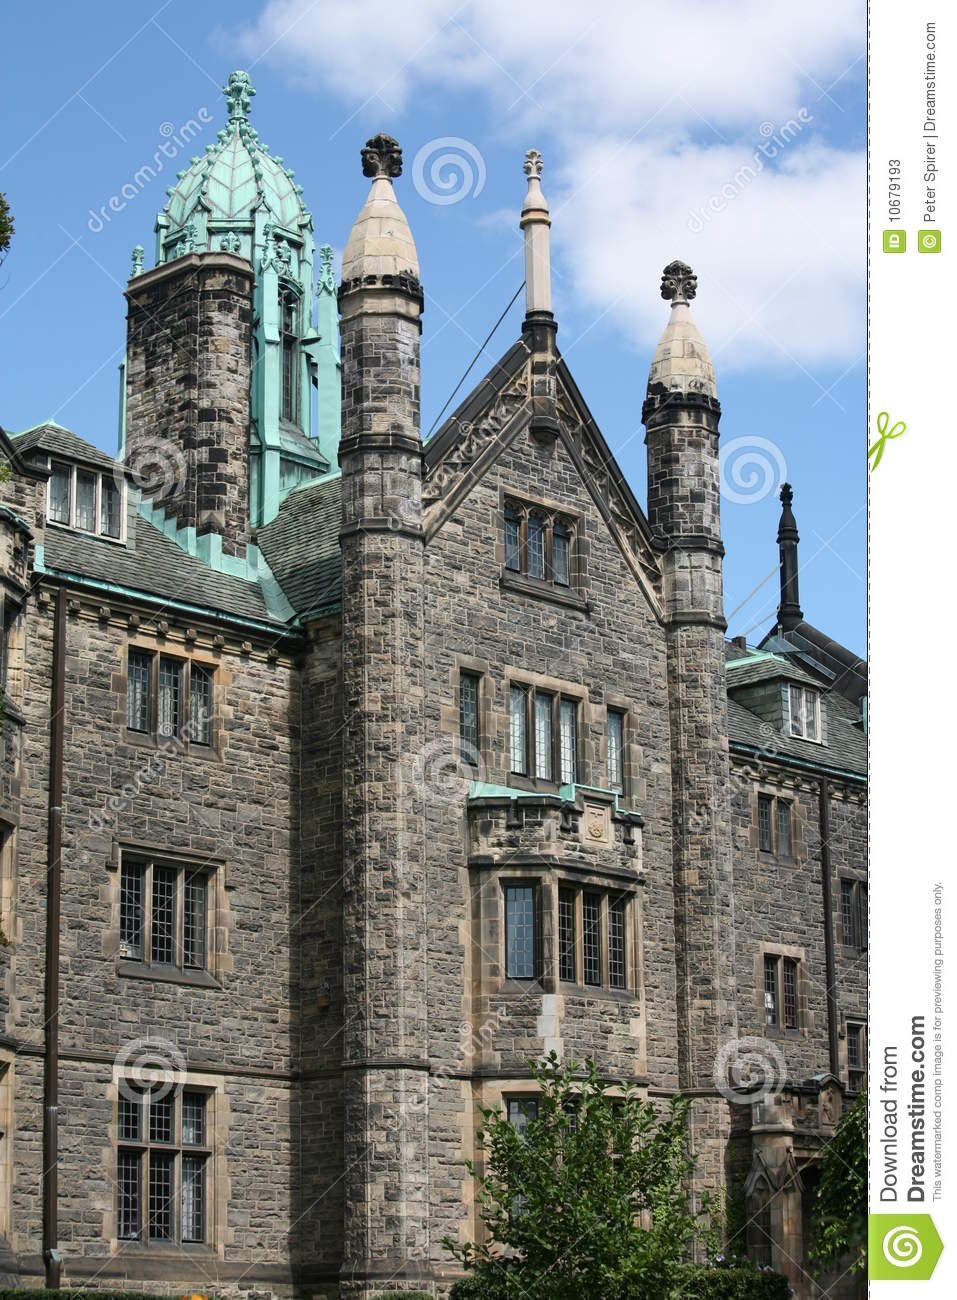 an analysis of gothic style in architecture The buildings now days have many developed characteristics from this style gothic architecture more about romanesque architecture versus gothic analysis of a.